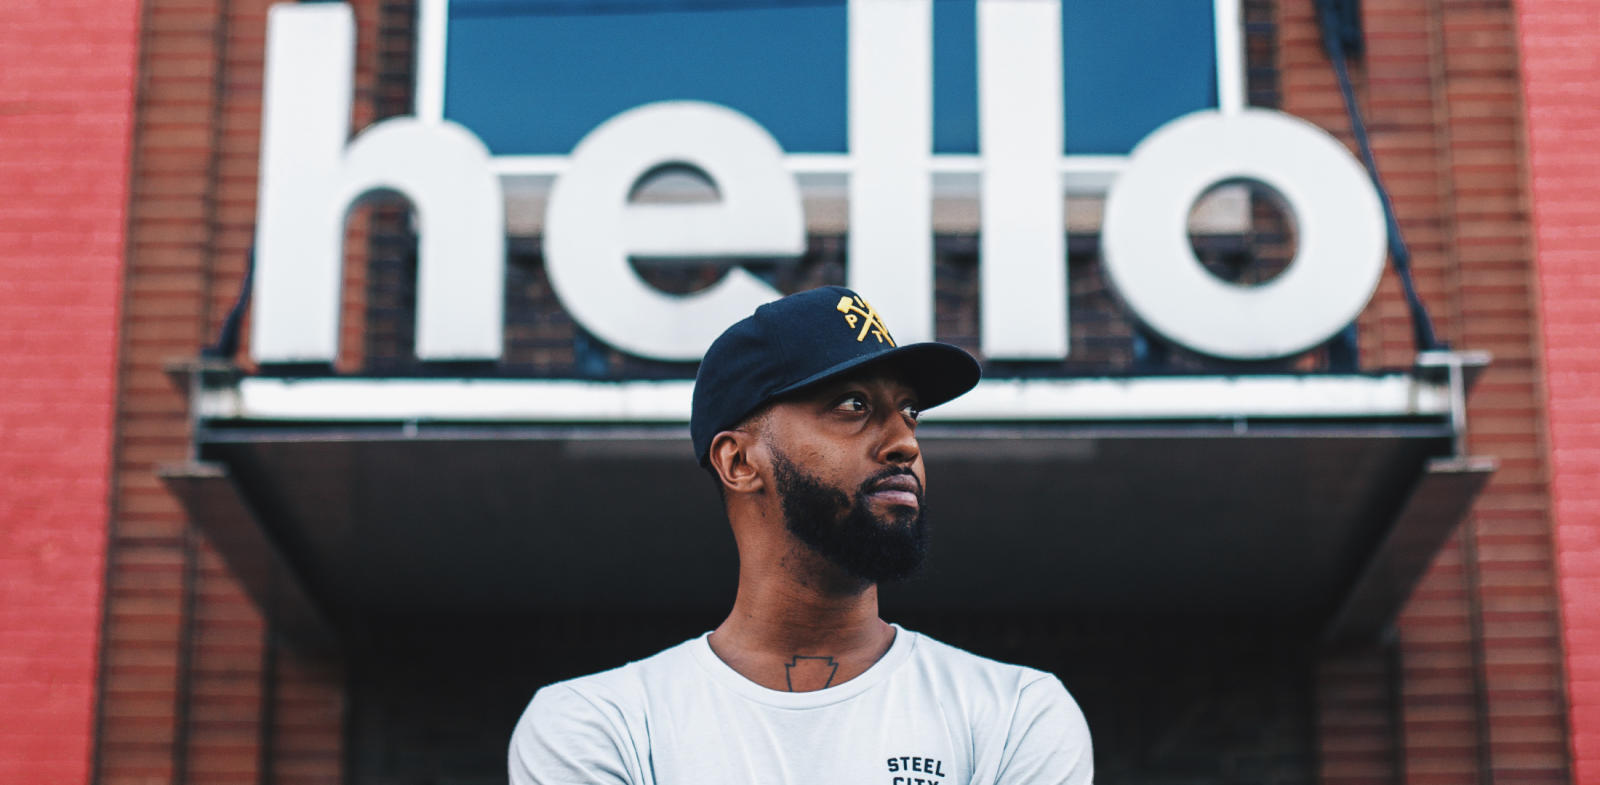 black man standing in front of hello sign